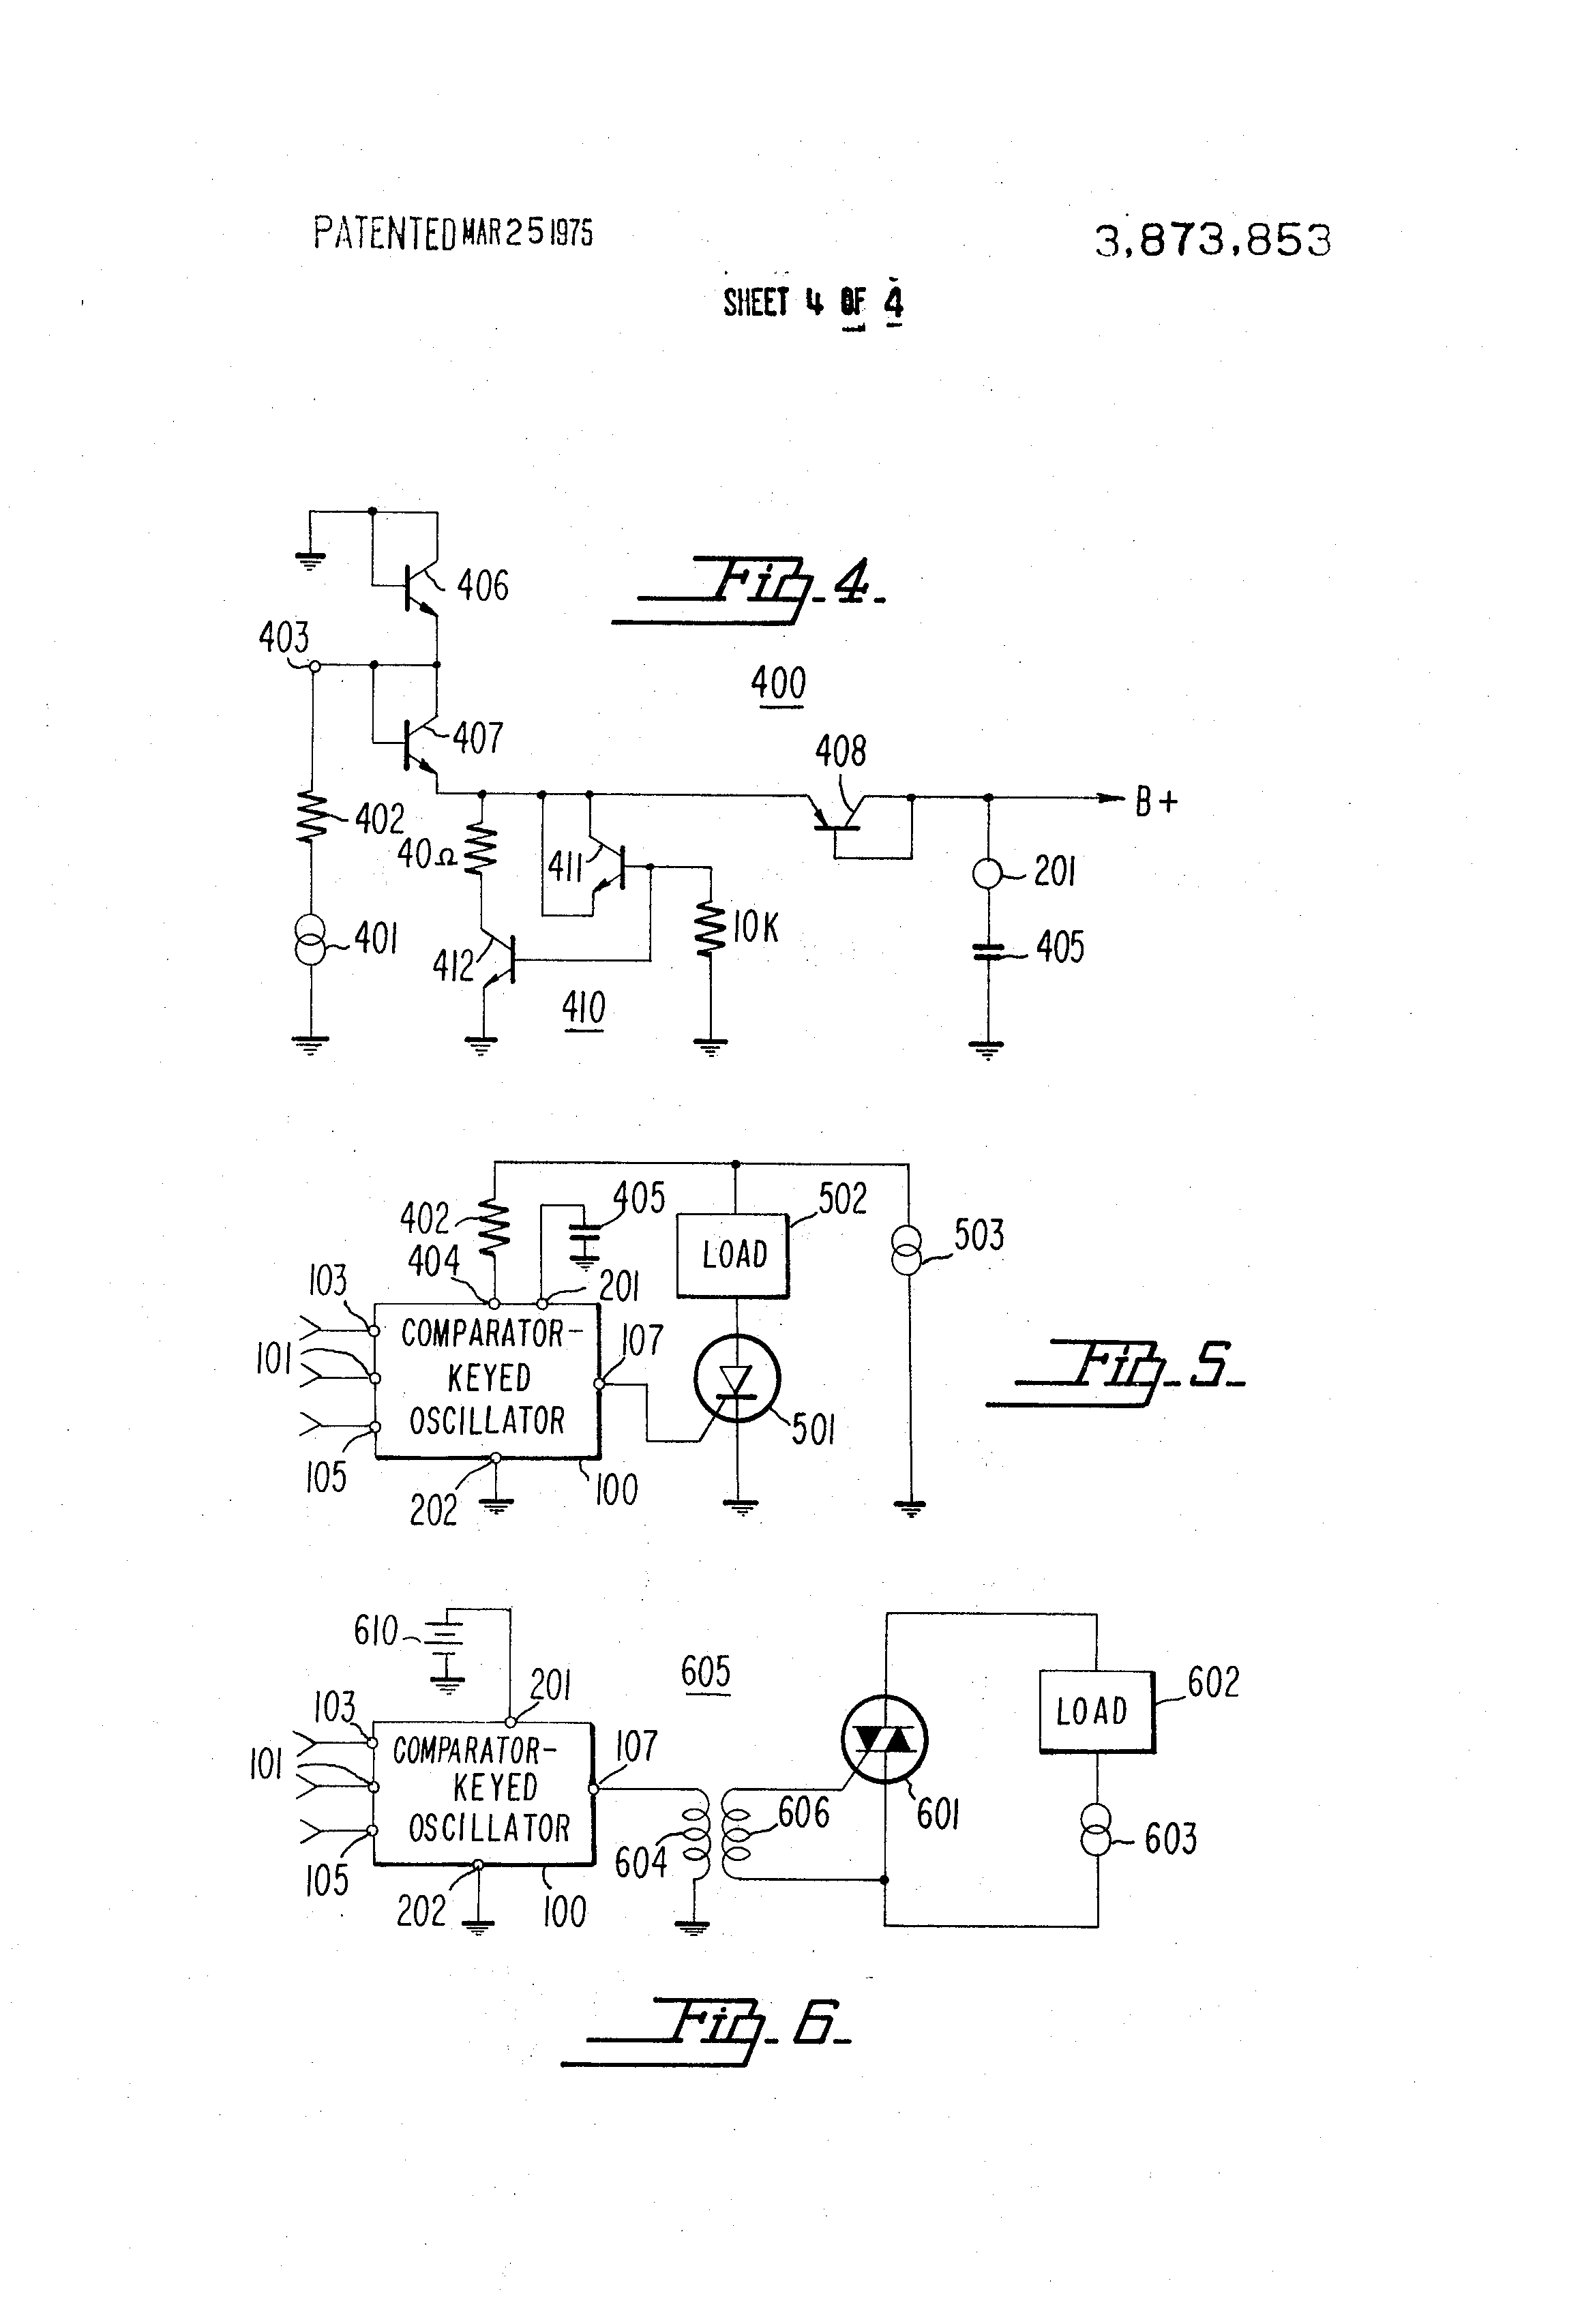 Patent Us3873853 Comparator Keyed Oscillator Google Patentsuche Pujt Voltage Power On Delay Circuits Drawing